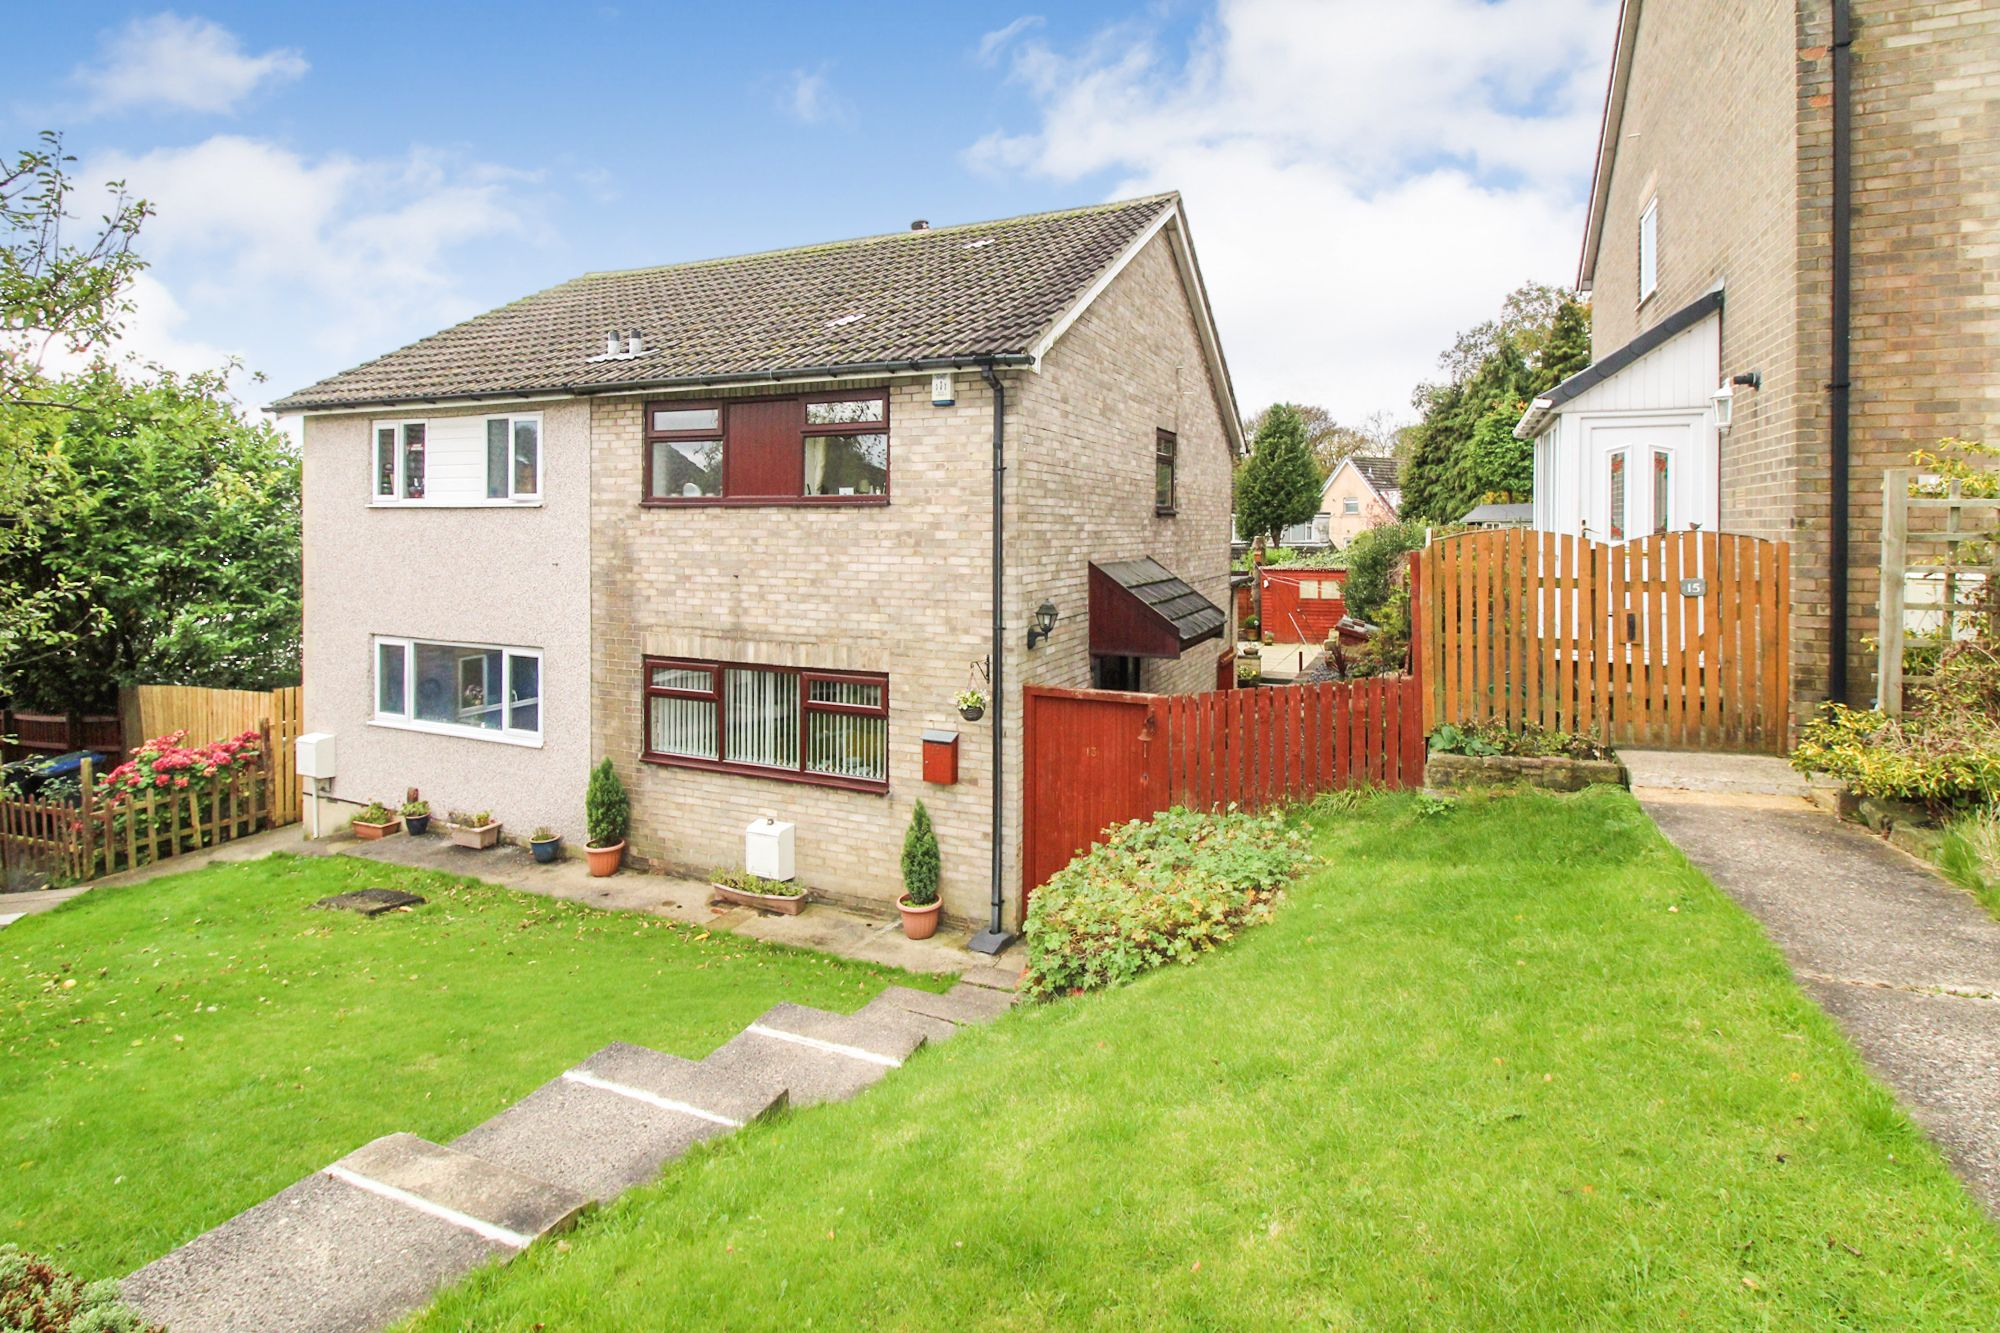 3 bedroom semi-detached house For Sale in Bradford - Front Elevation